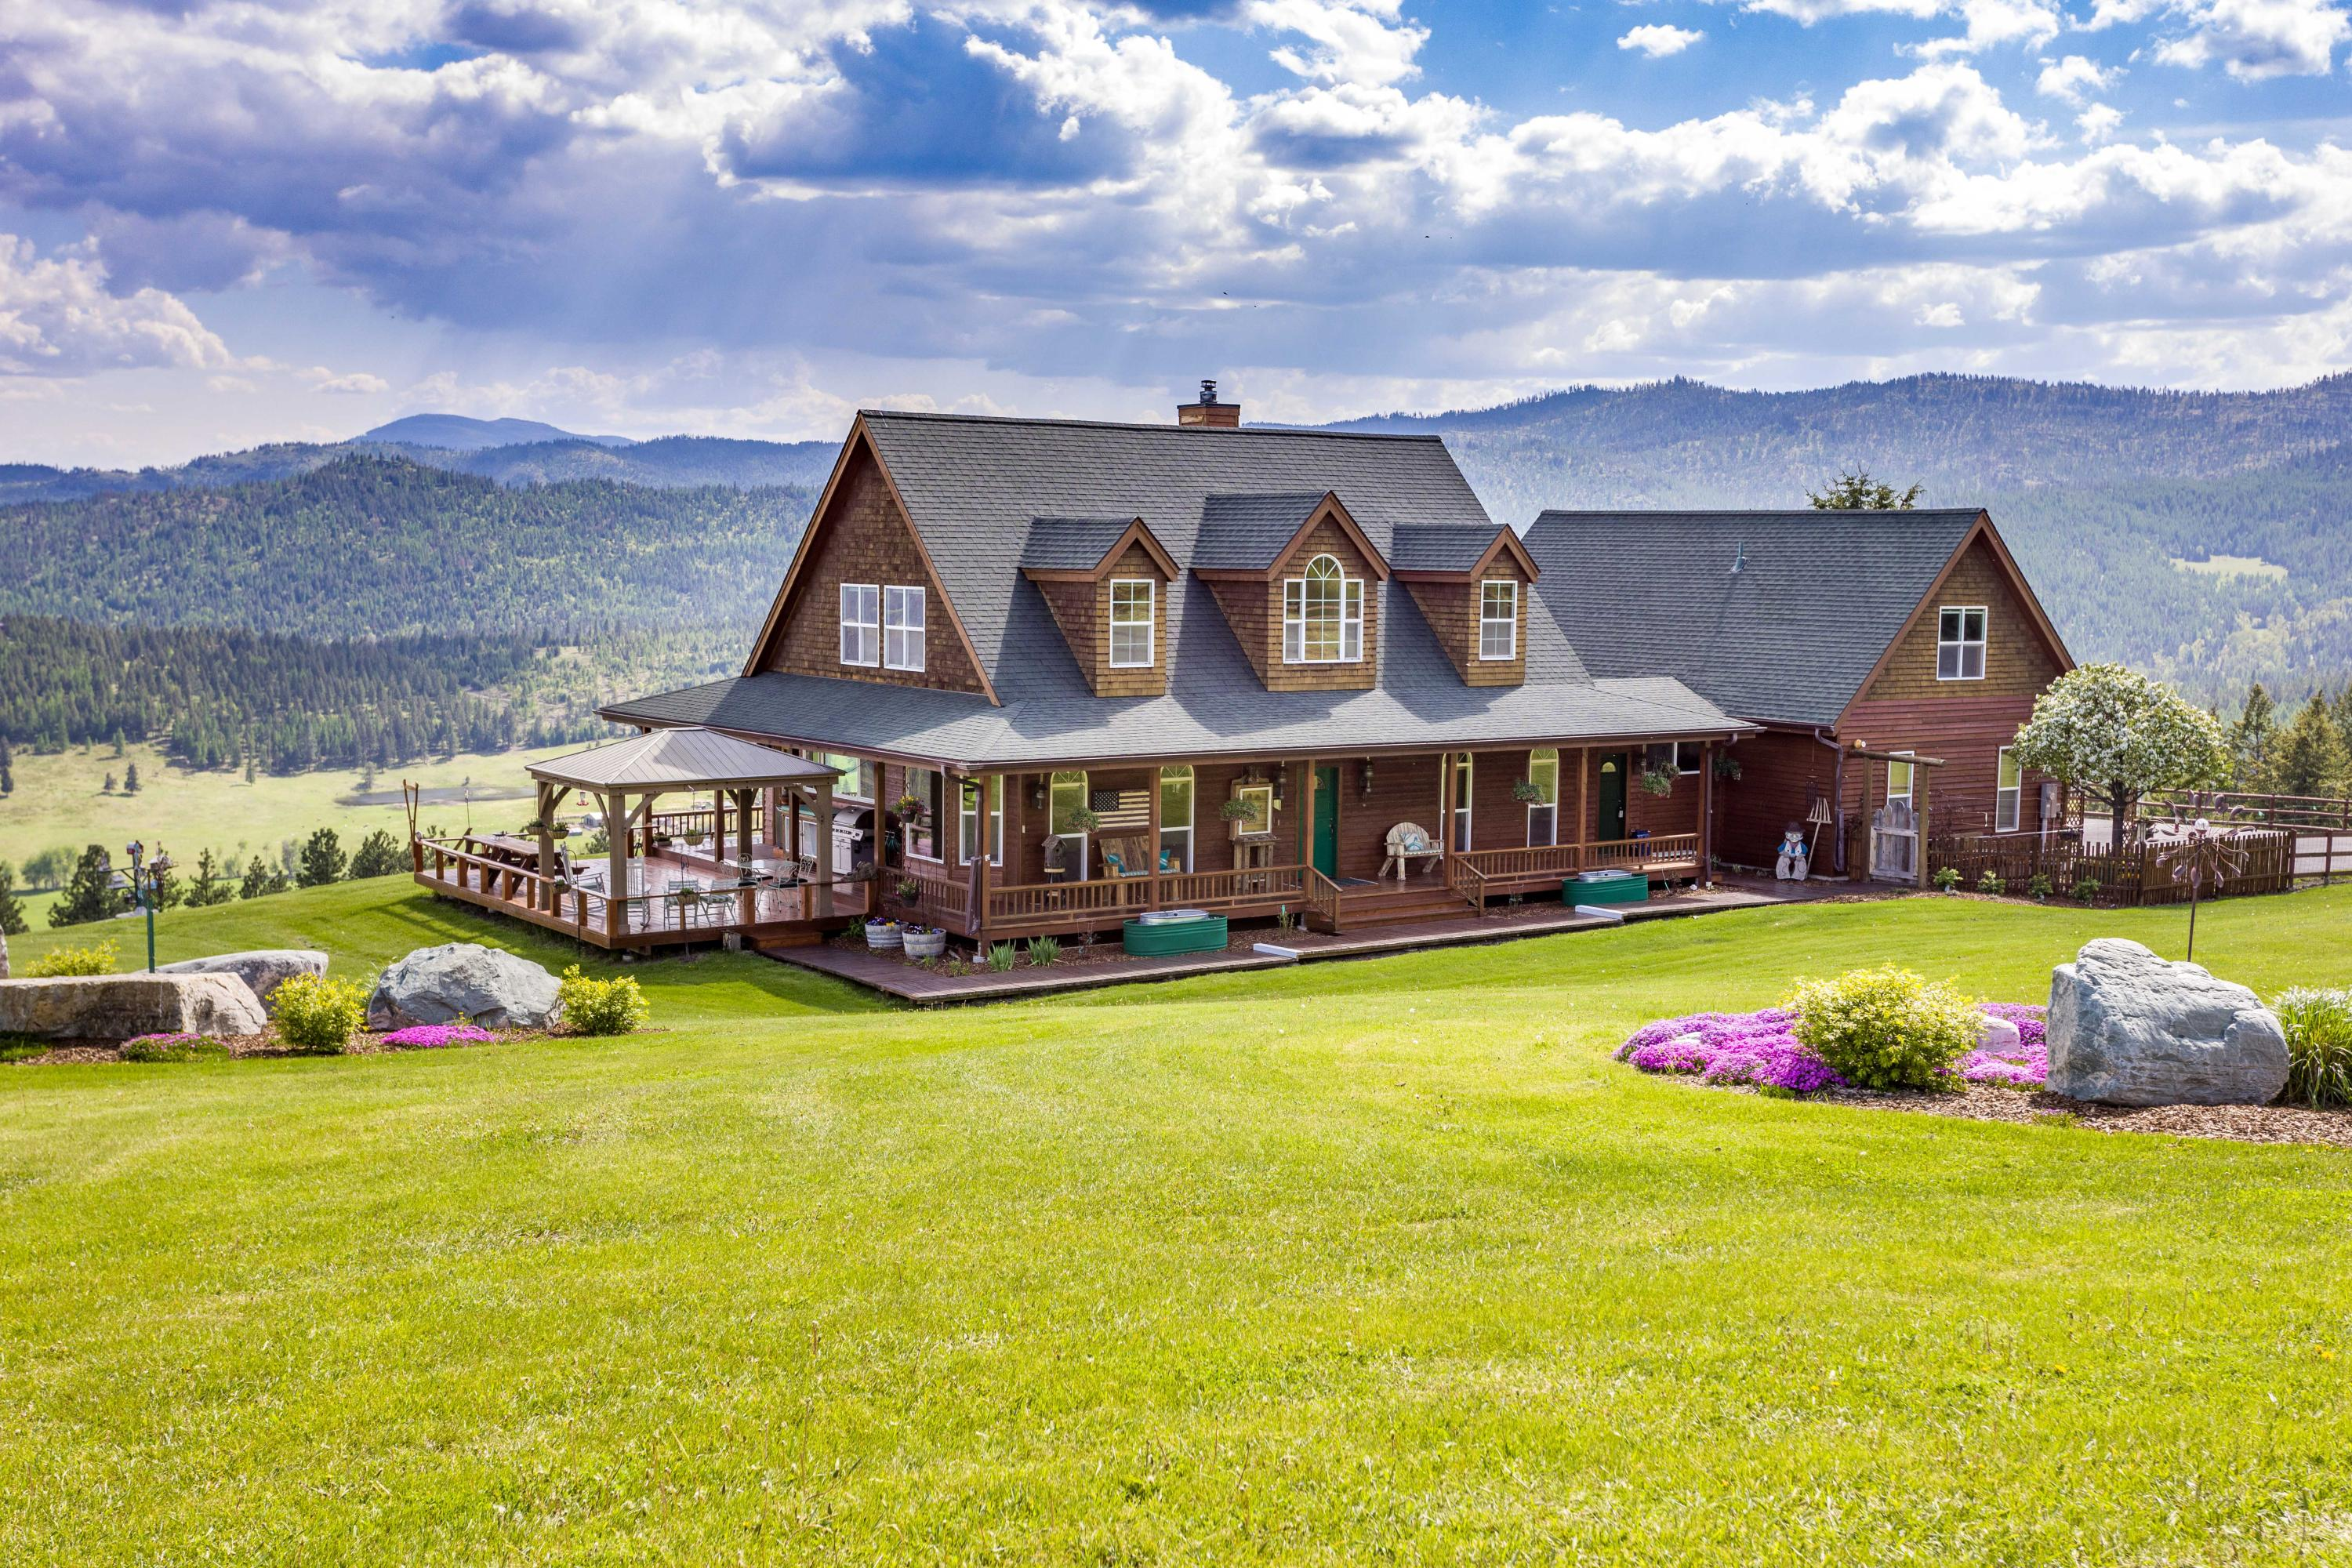 84 Spring Mountain Drive: a luxury home for sale in Kalispell, Flathead  County , Montana - Property ID:21908000 | Christie's International Real  Estate